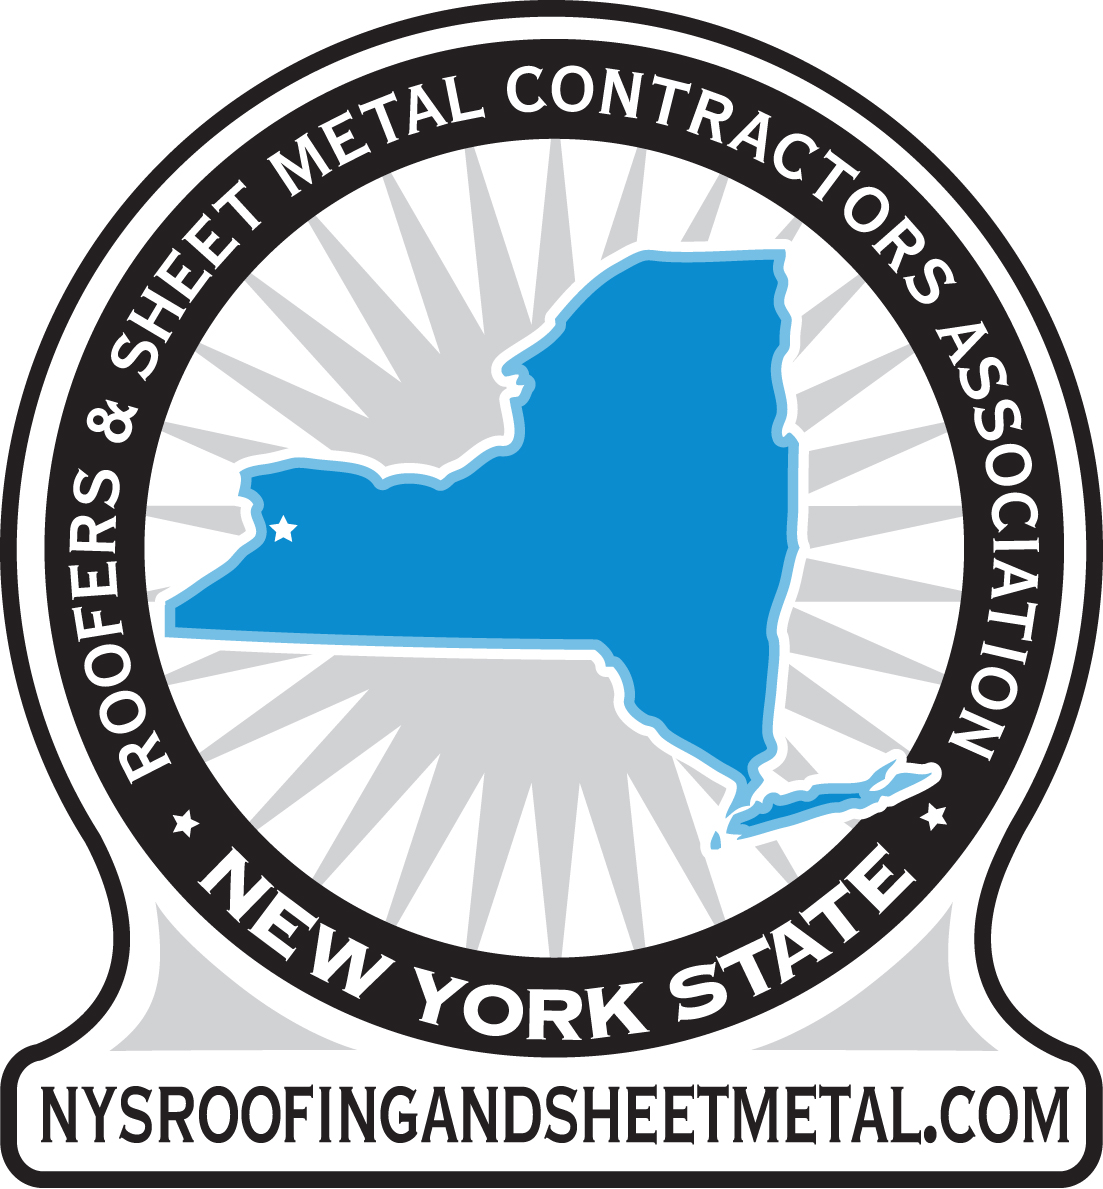 Roofers & Sheet Metal Contractors Association of New York State logo